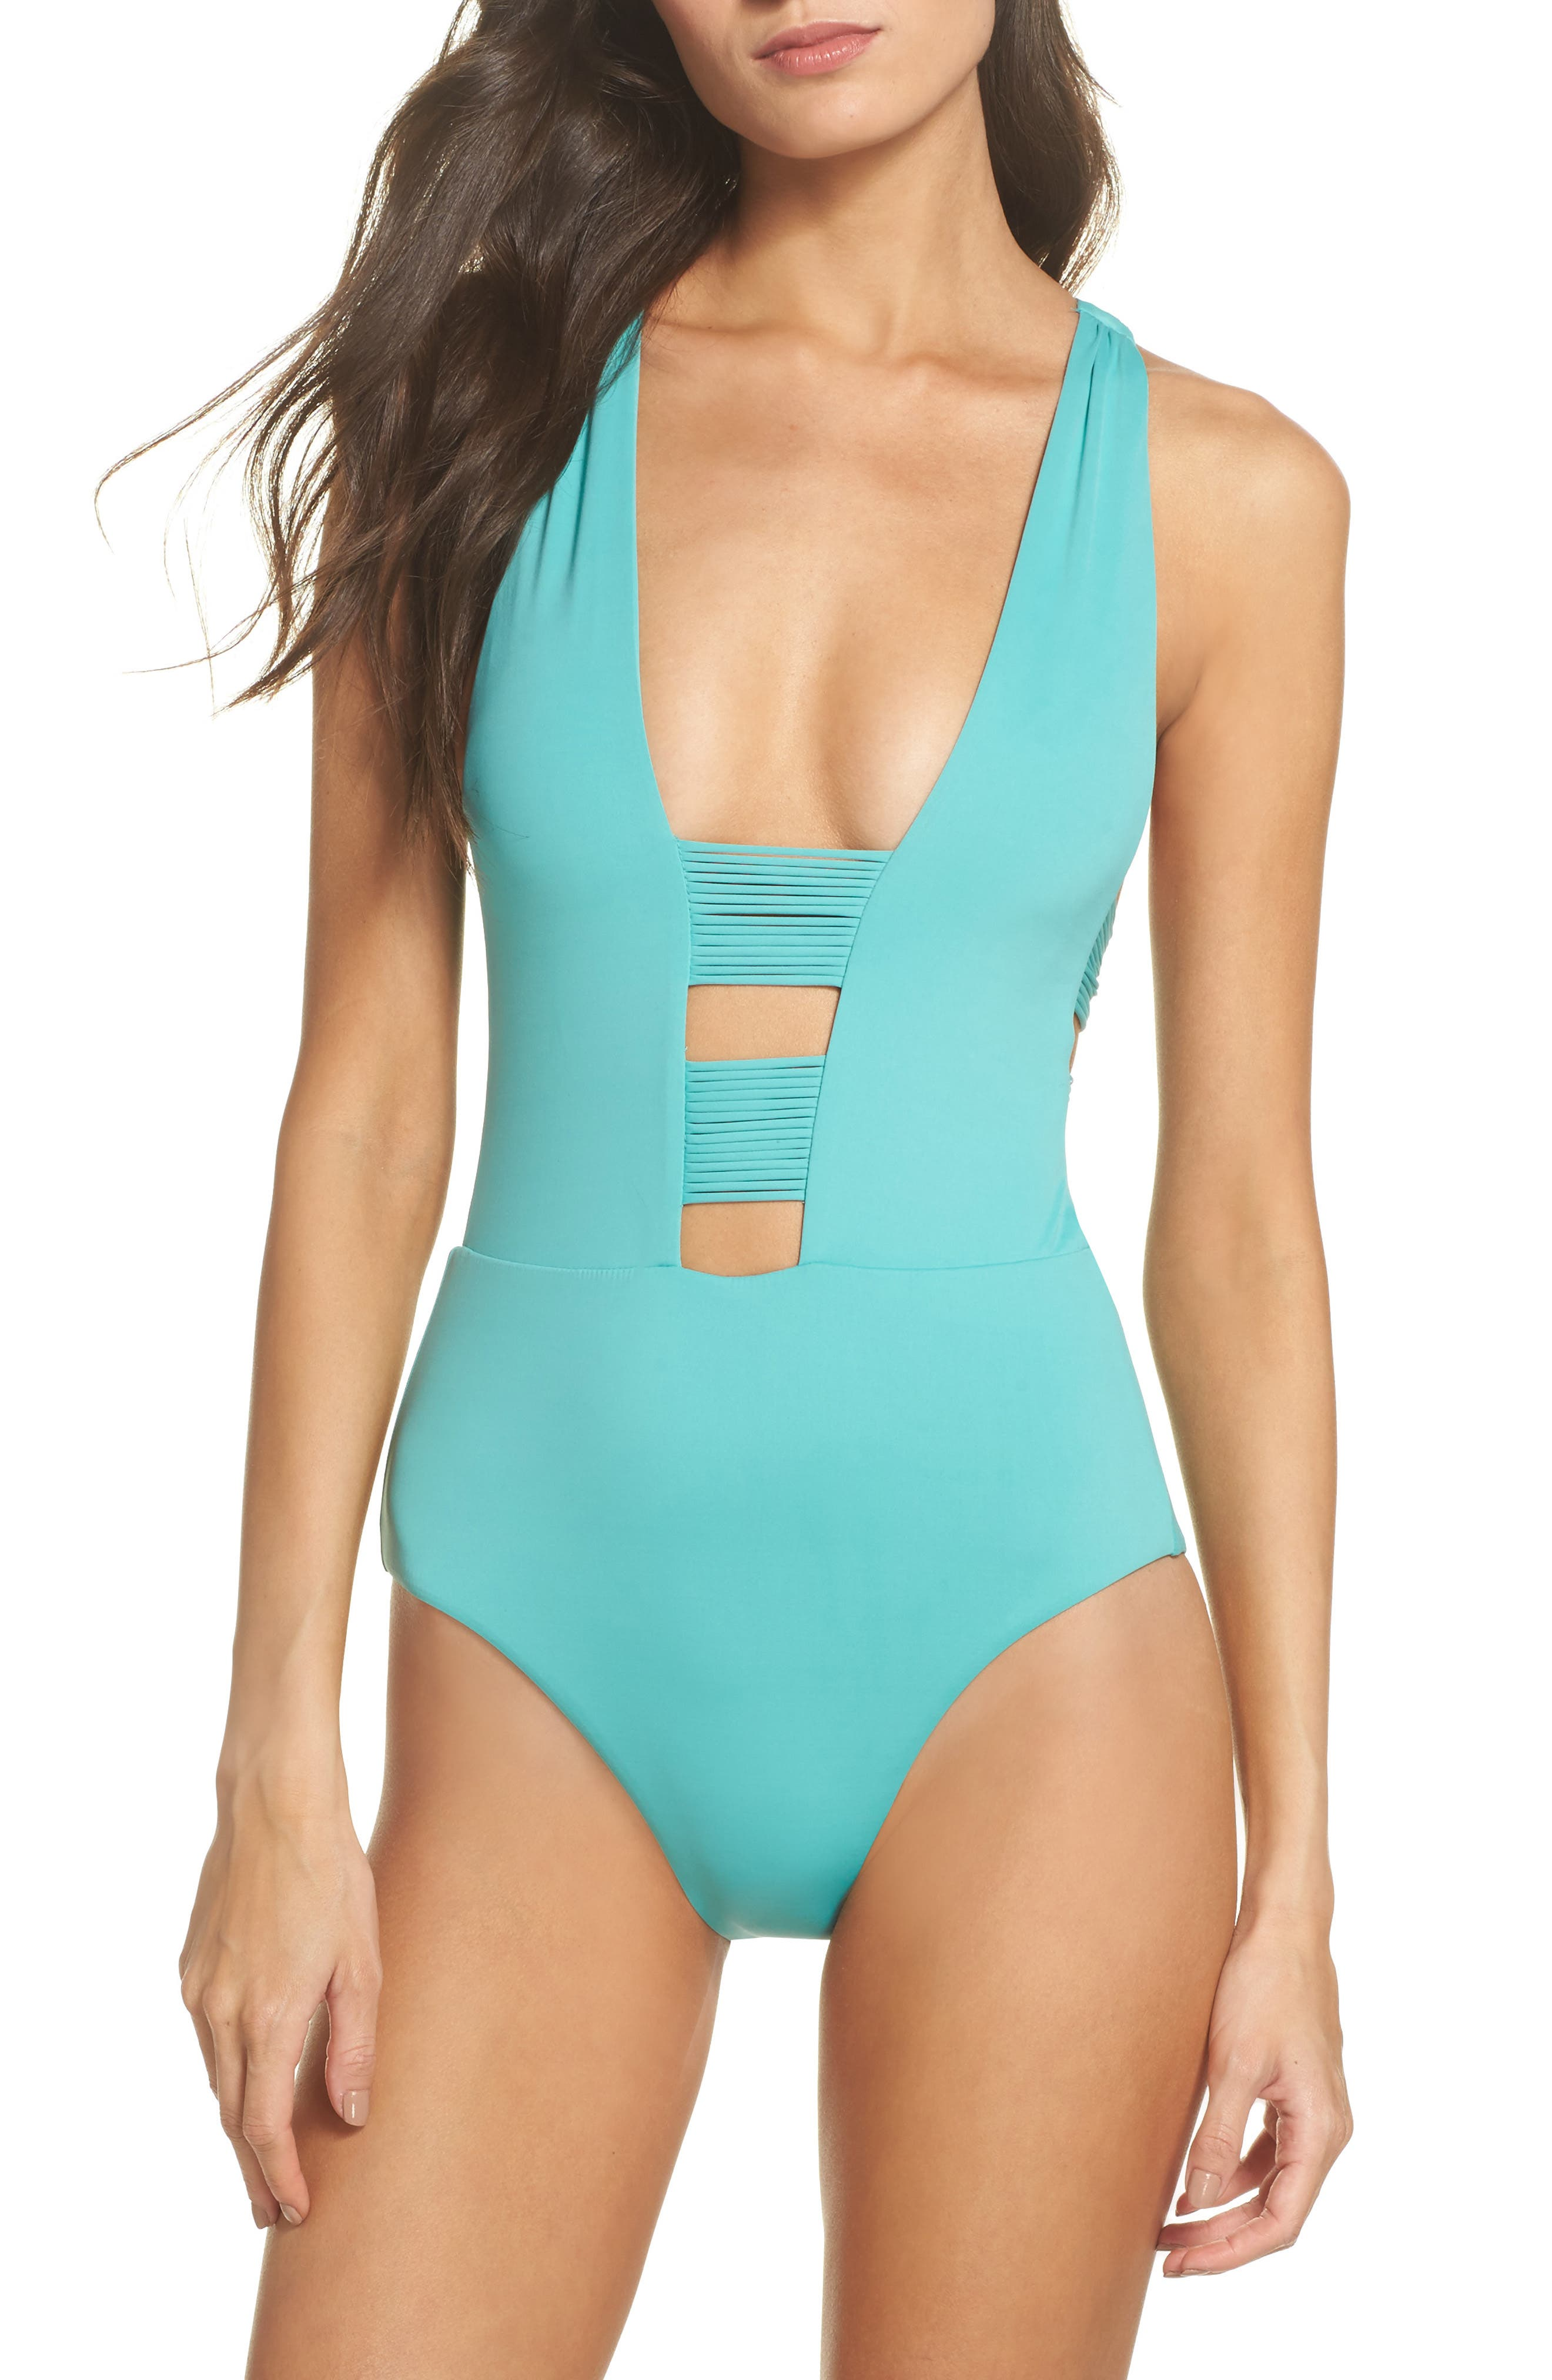 Isabella Rose Beach Solids One-Piece Swimsuit